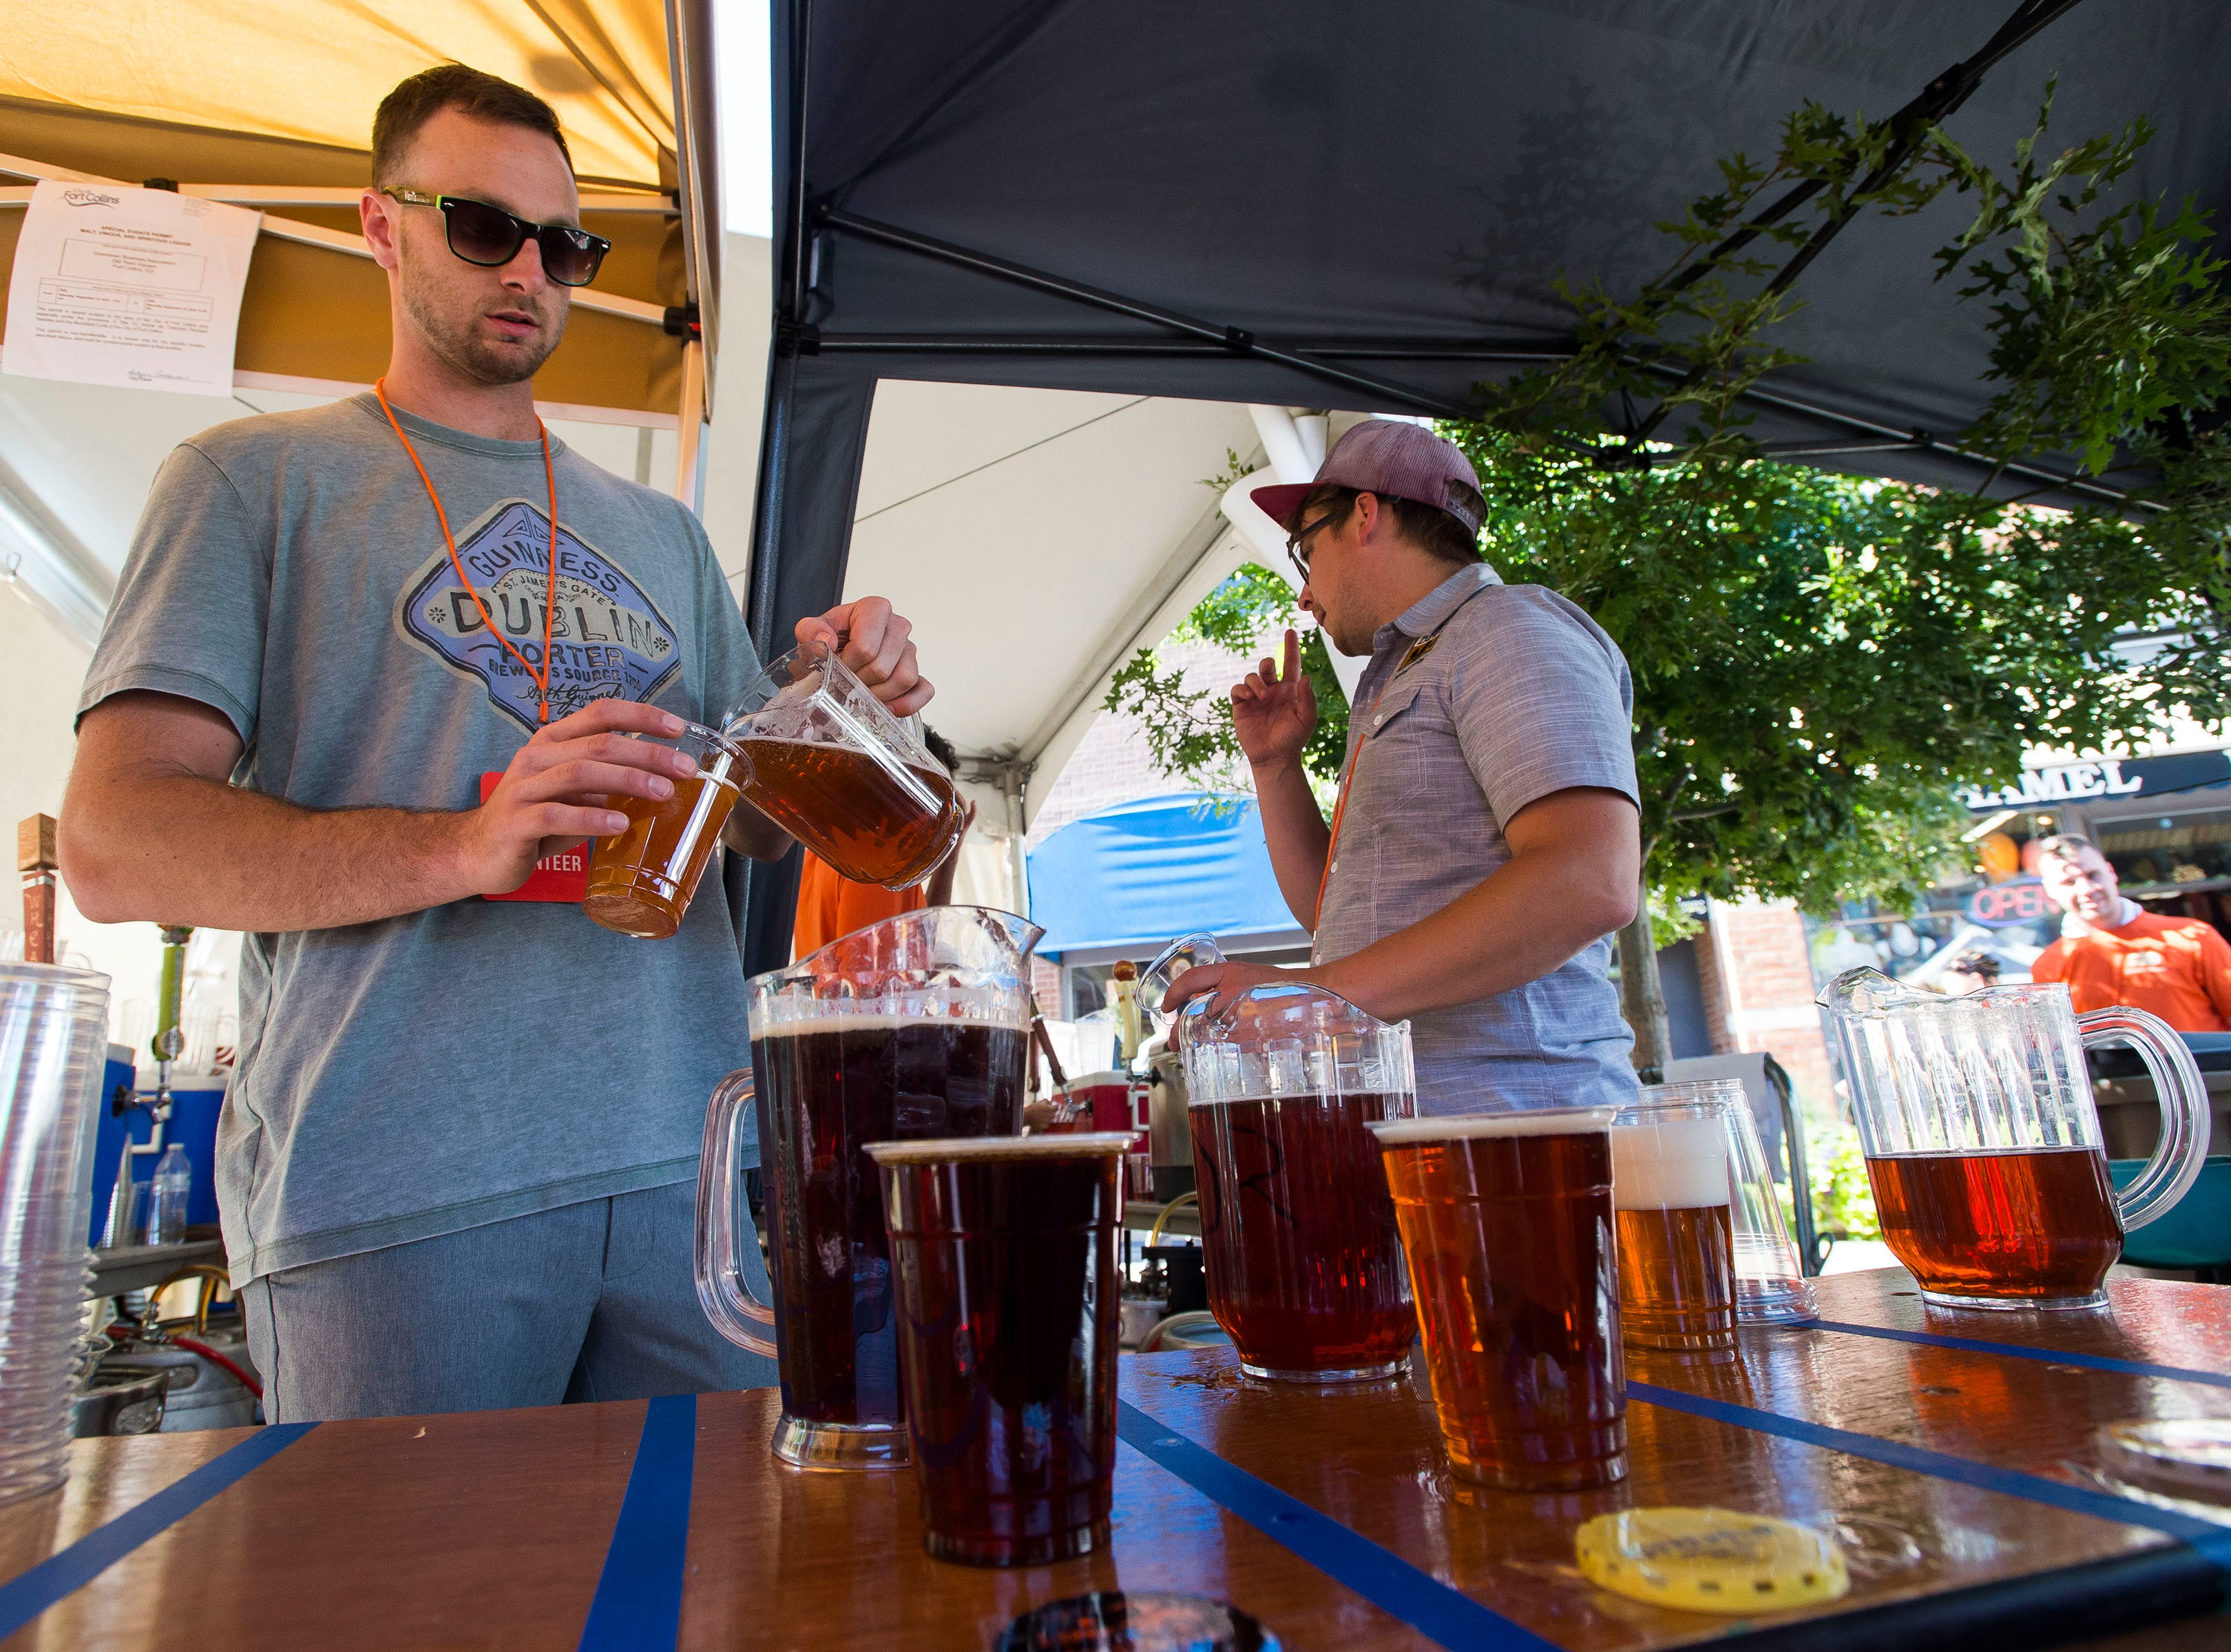 Volunteer Evan Raiskin pours beers for patron during Fortoberfest 2018 on Saturday, Sept. 15, 2018, at Old Town Square in Fort Collins, Colo.